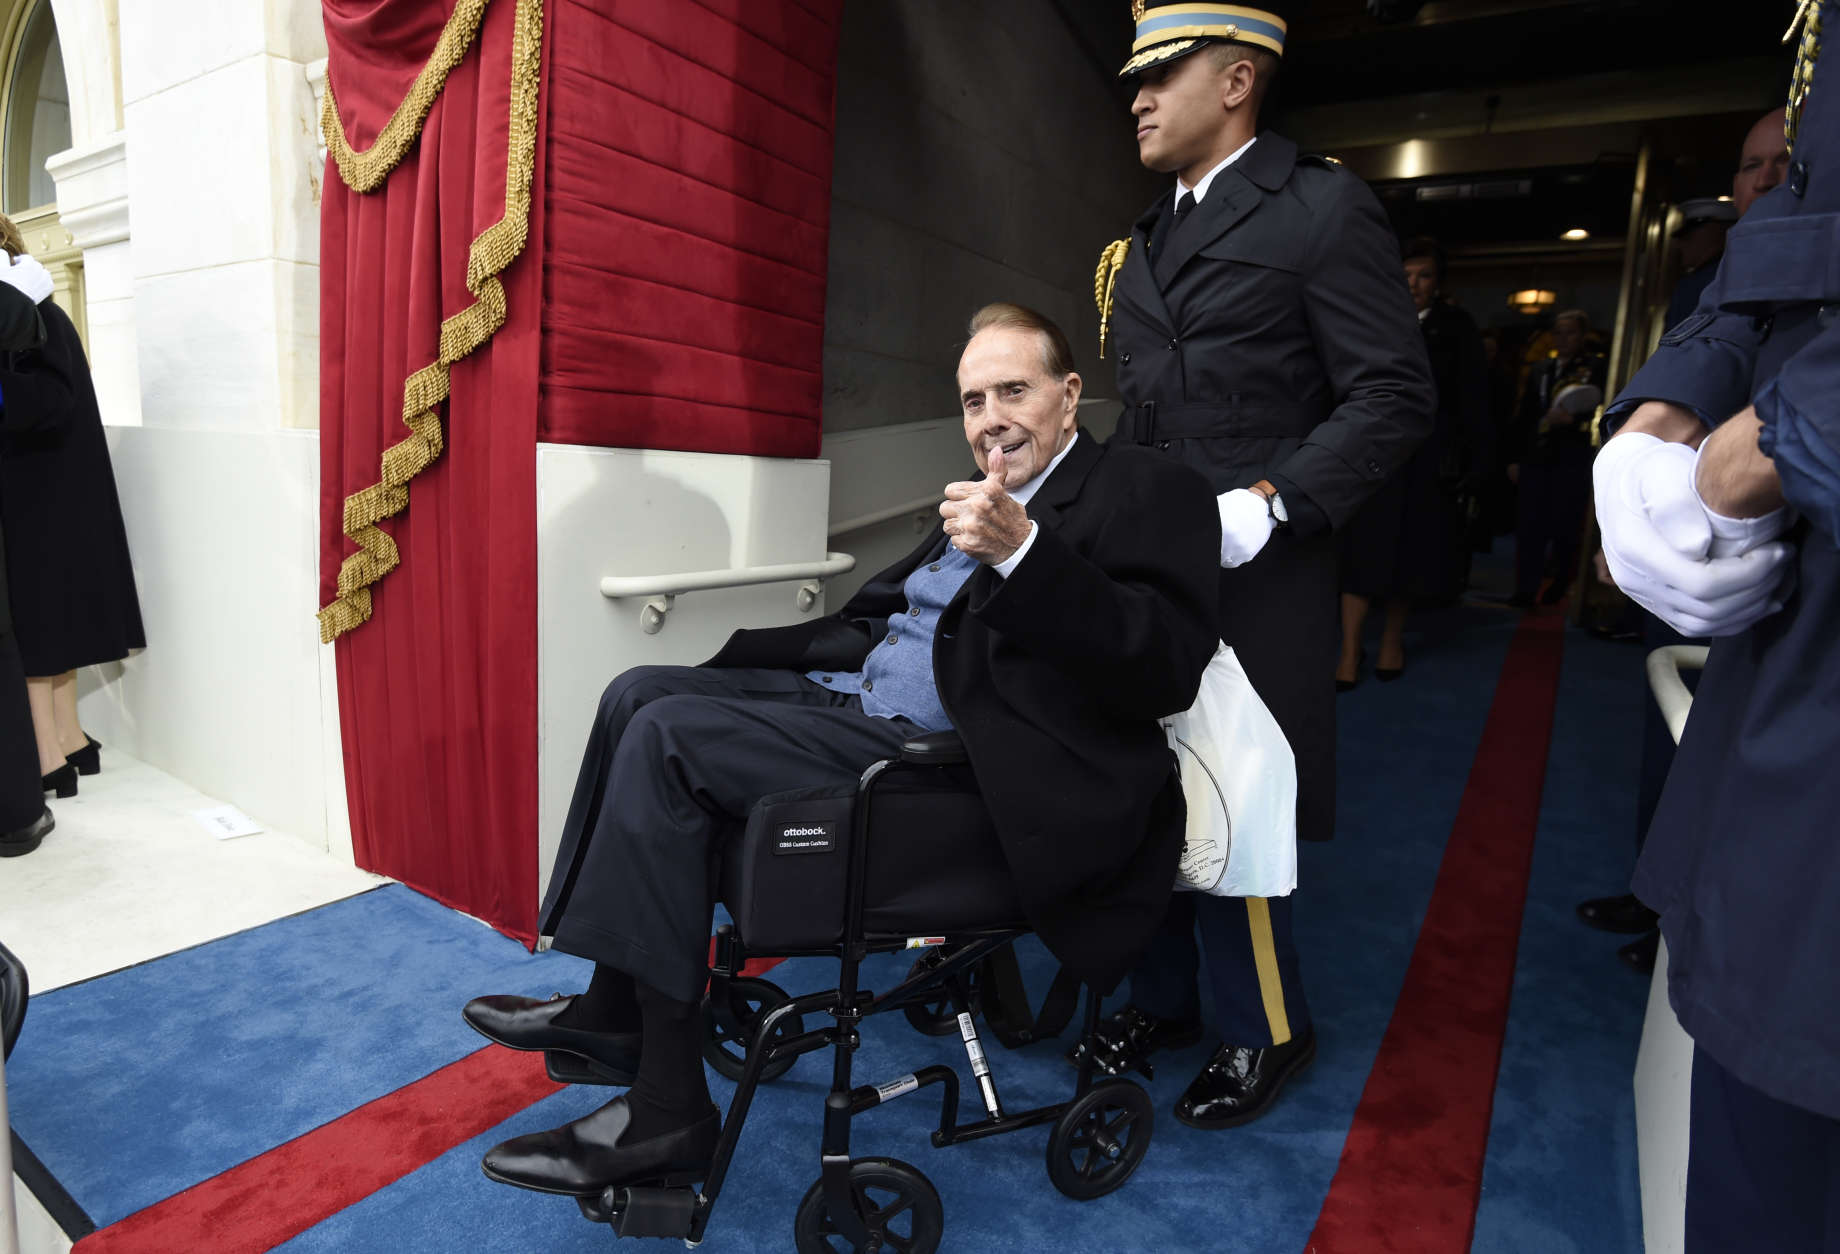 WASHINGTON, DC - JANUARY 20: Former US Senator Bob Dole arrives for the Presidential Inauguration of Donald Trump at the US Capitol on January 20, 2017 in Washington, DC. Donald J. Trump will become the 45th president of the United States today.  (Photo by Saul Loeb - Pool/Getty Images)